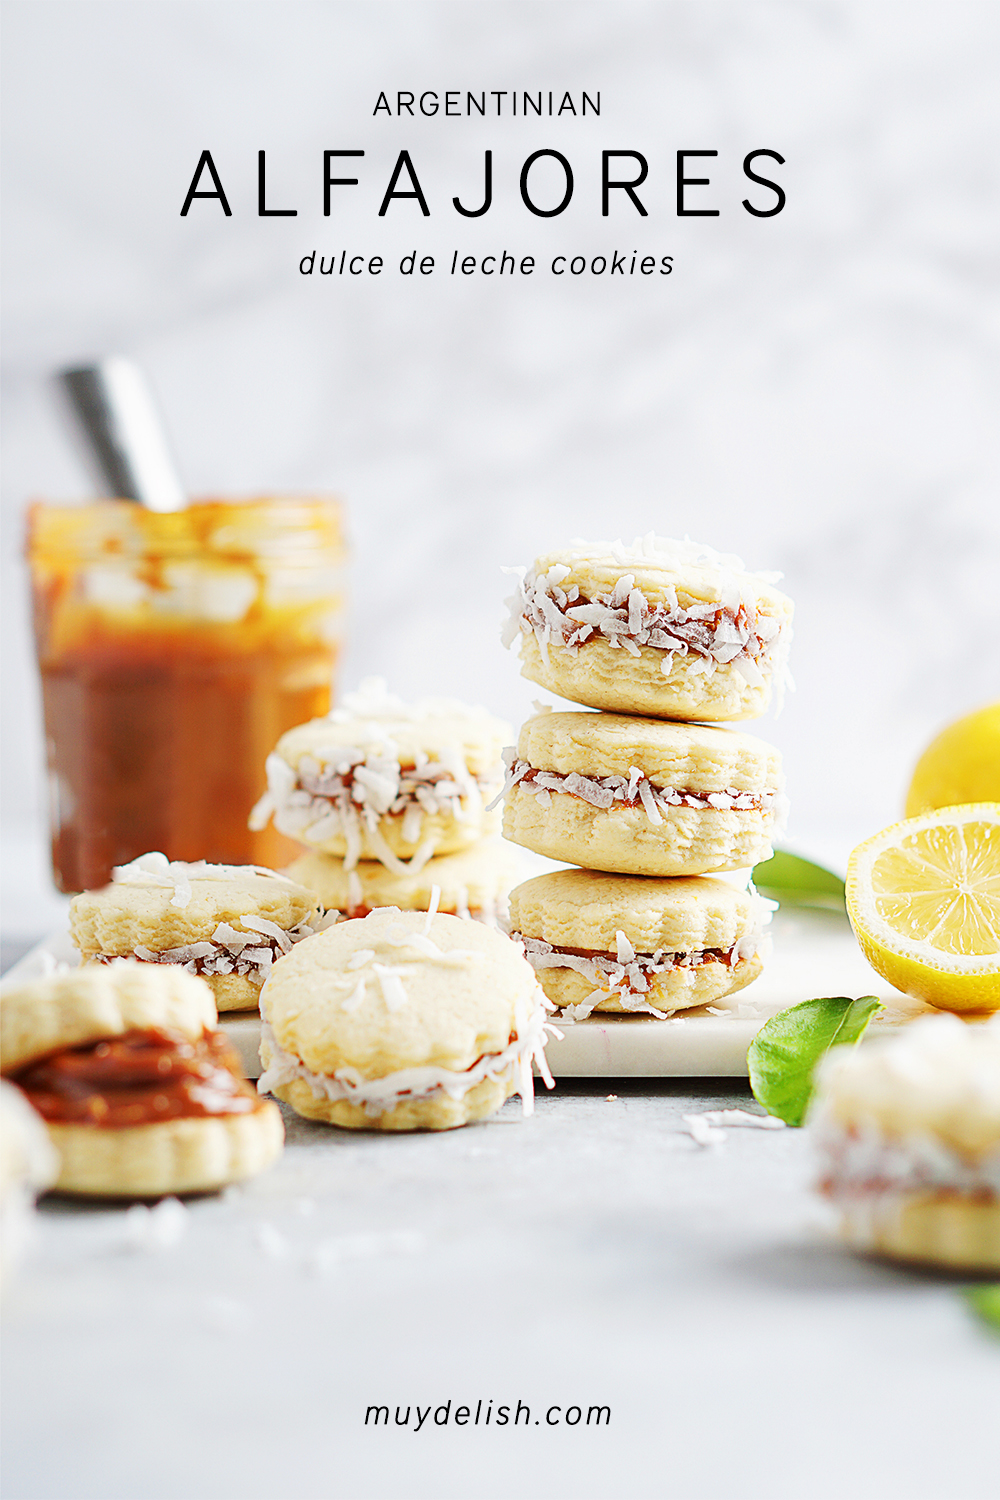 A stack of Alfajores and dulce de leech in background